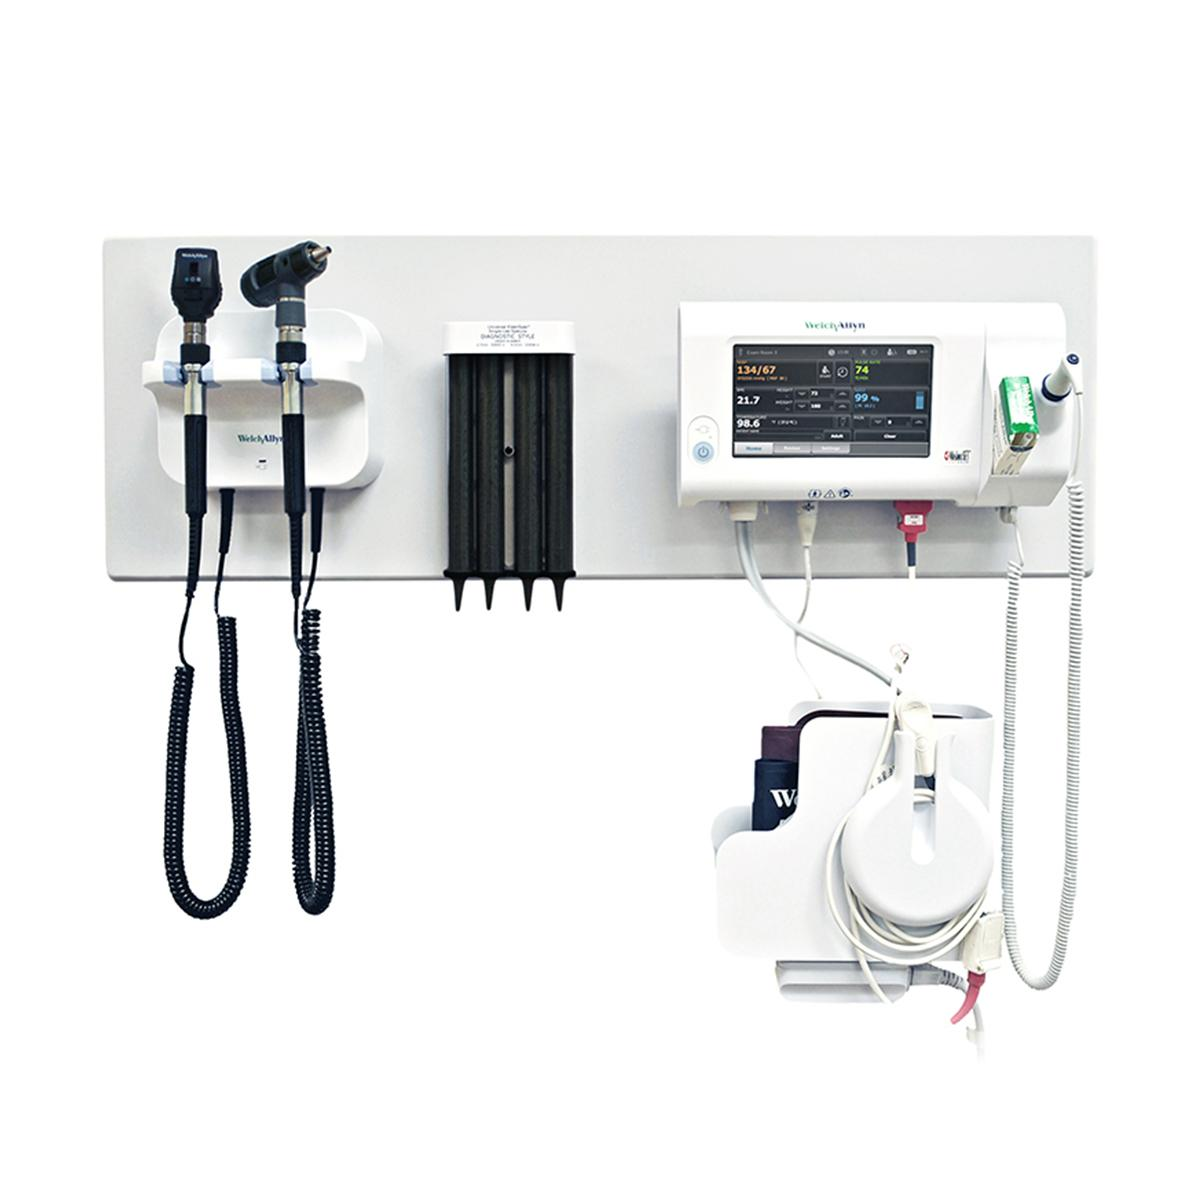 777 Integrated Wall System with otoscope, ophthalmoscope, probe covers and Connex Spot Monitor vital signs device